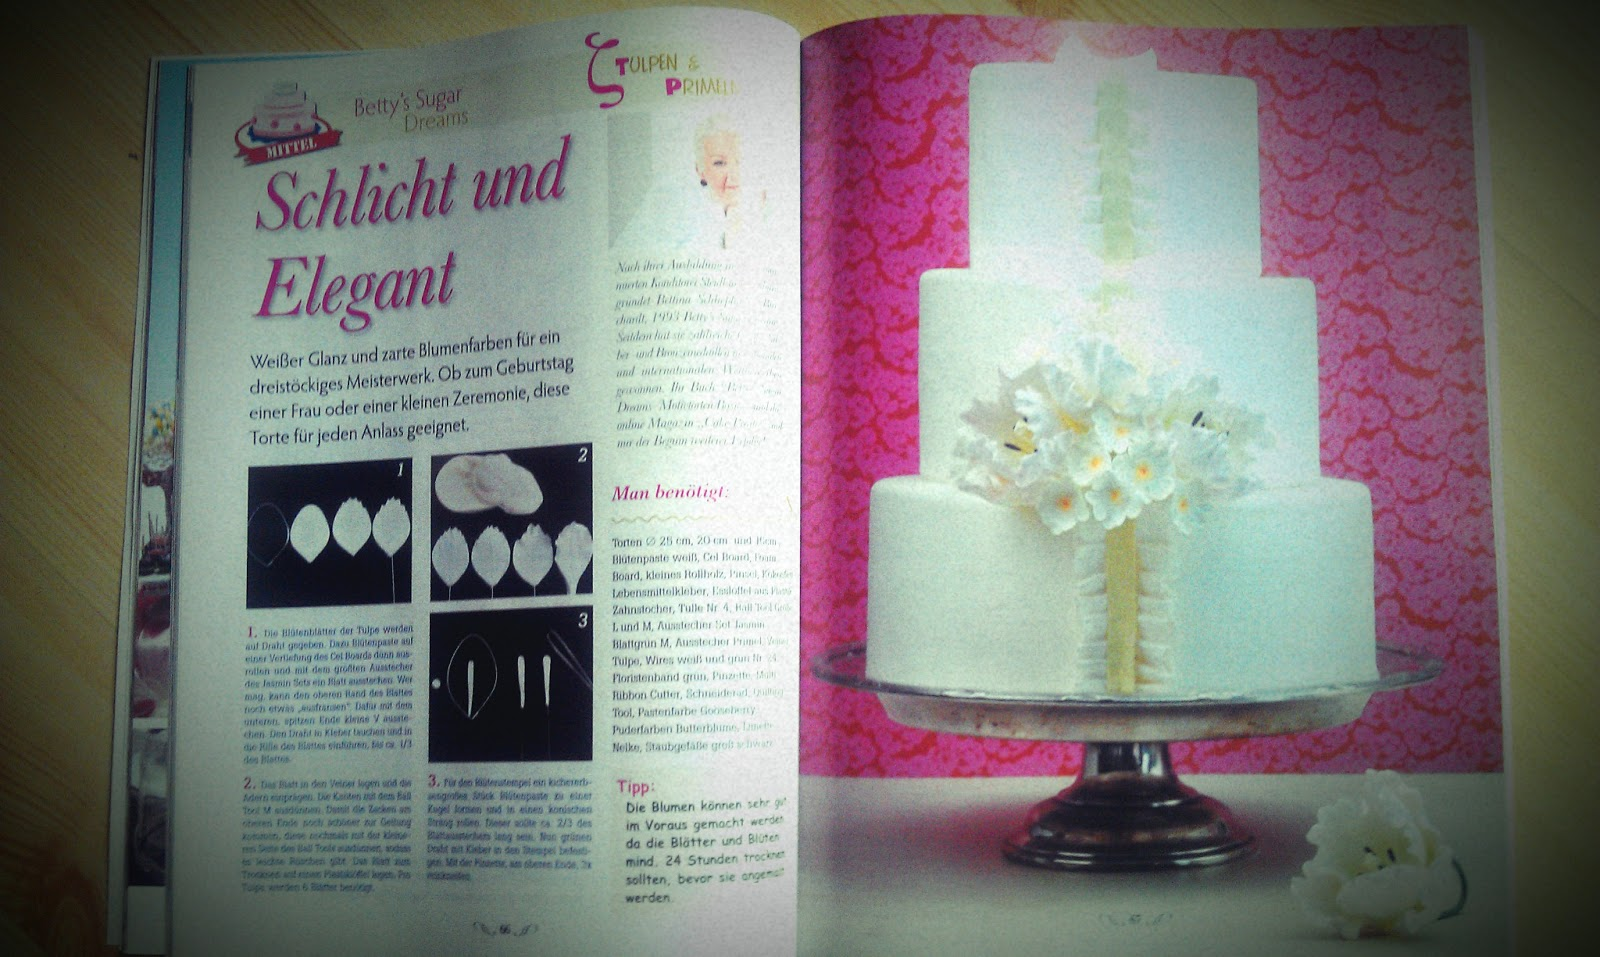 Cake Art Decor Zeitschrift : Betty?s Sugardreams - Blog: Marz 2013